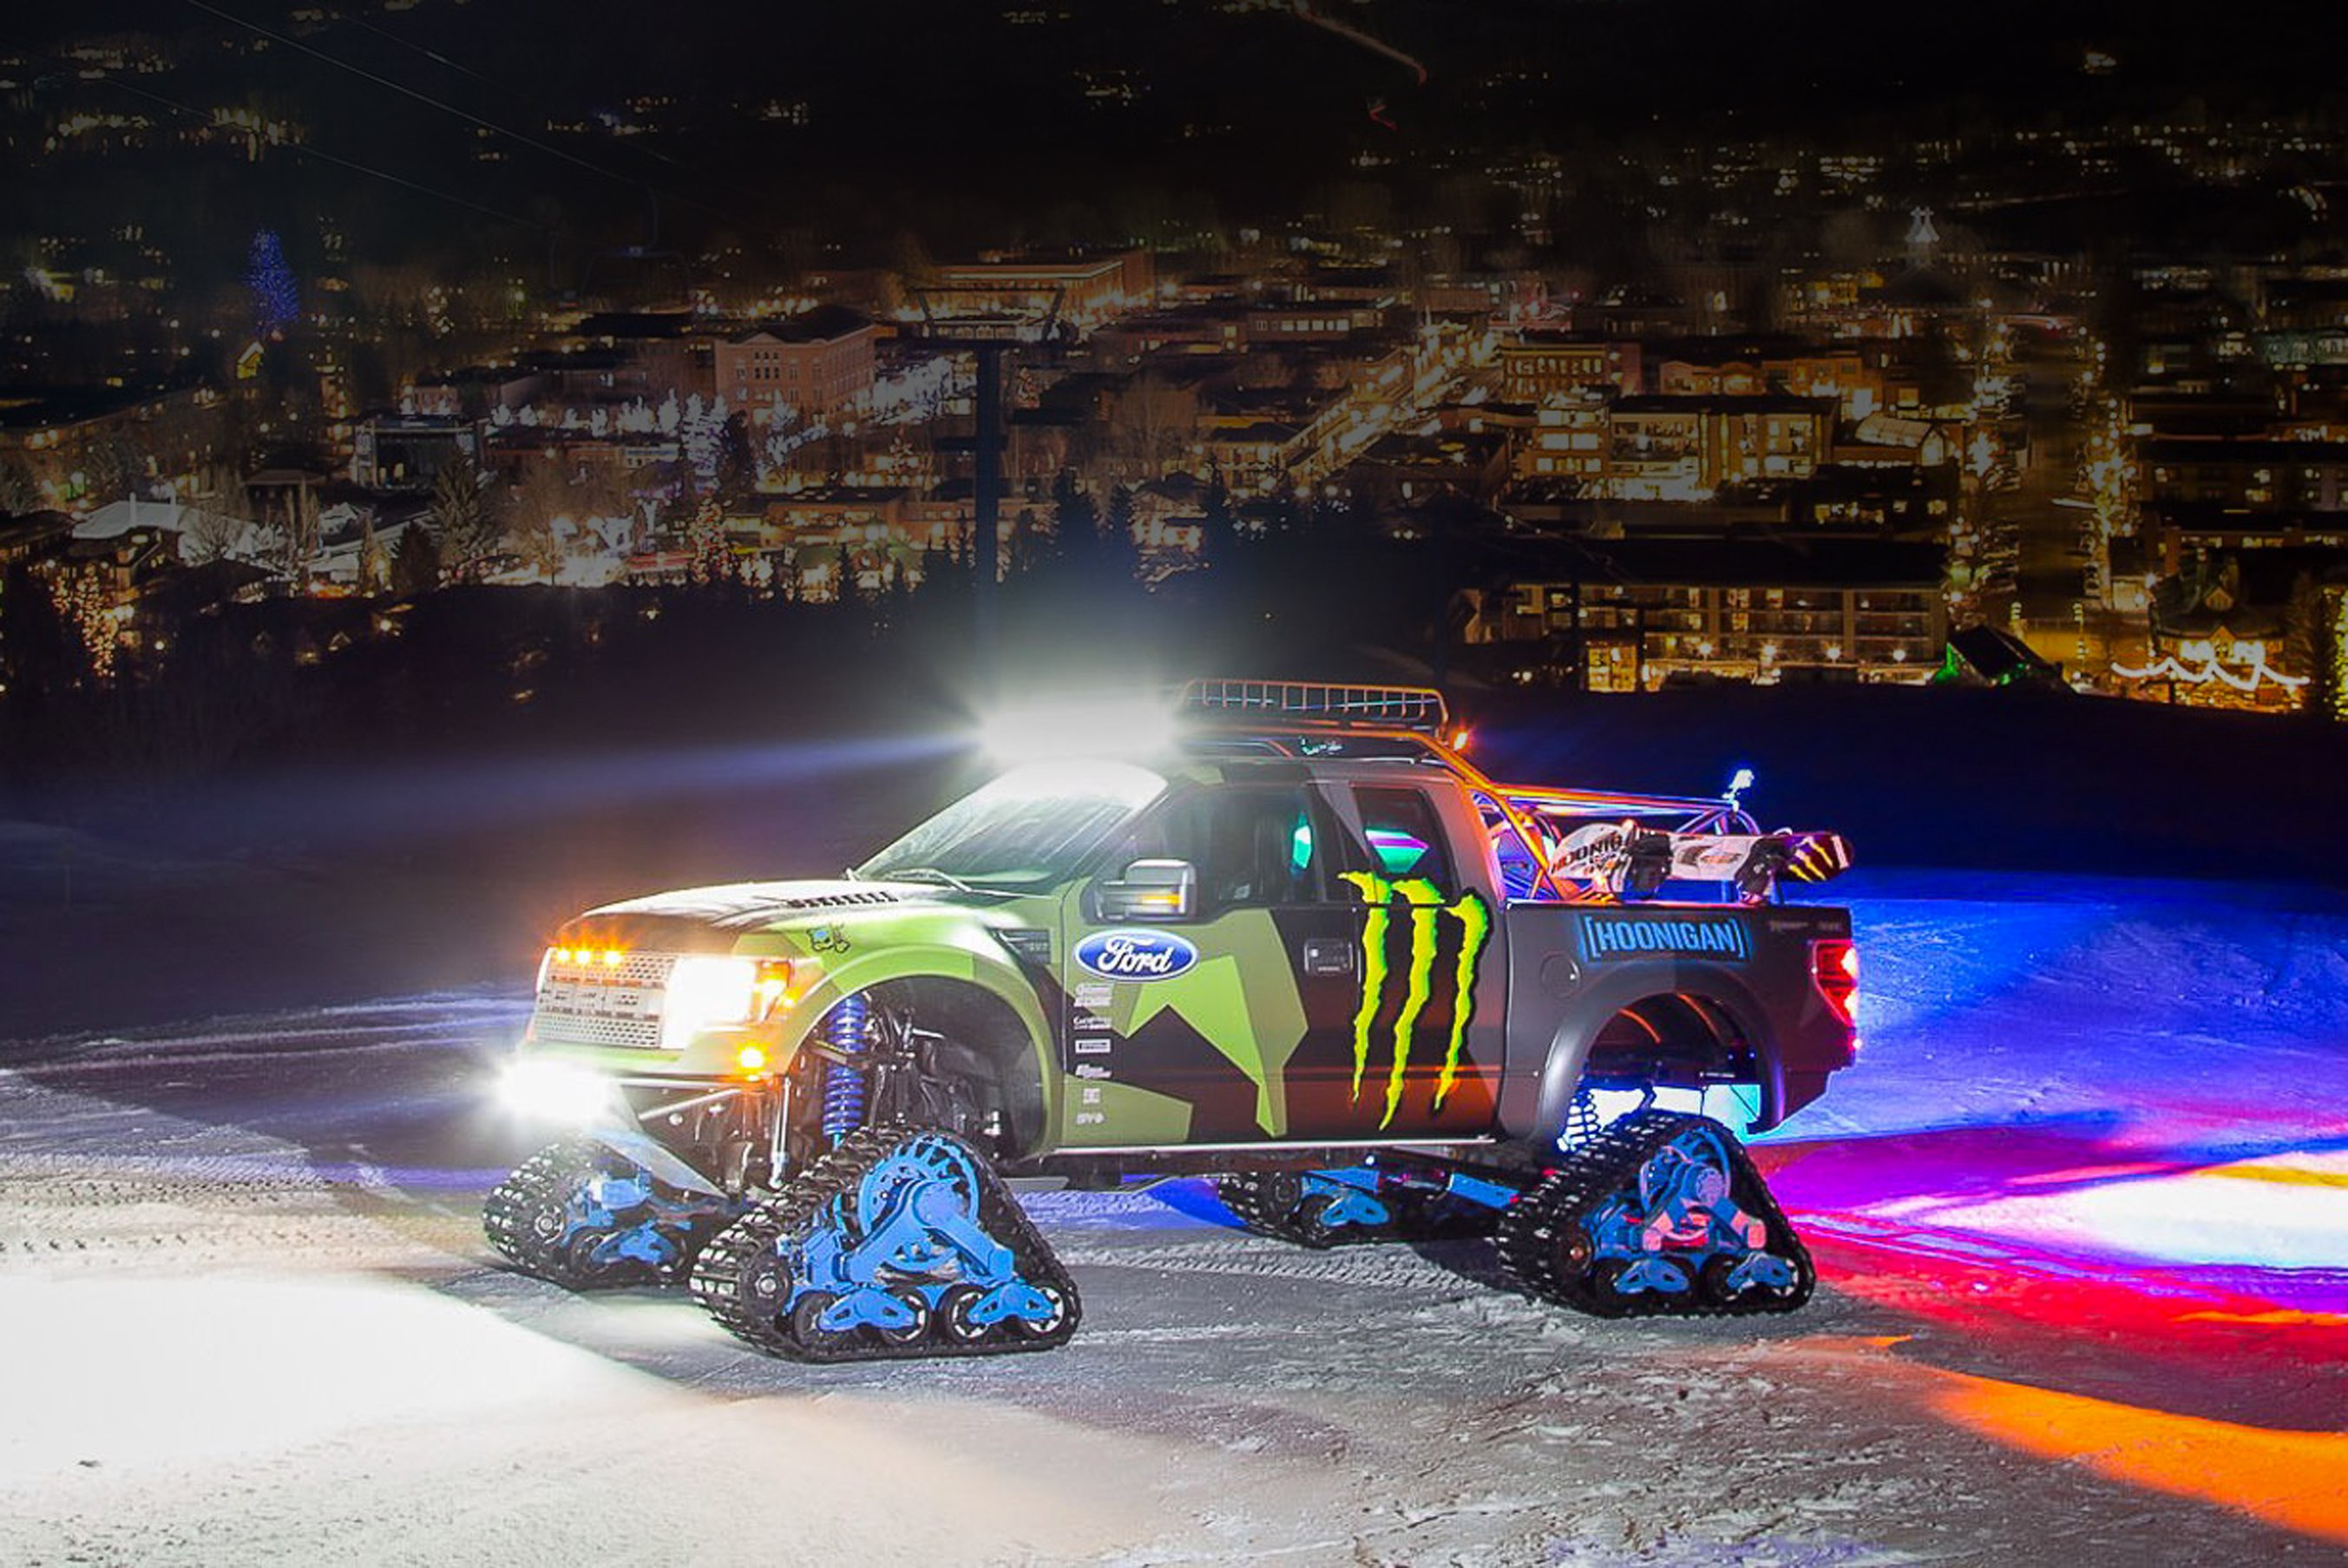 Ken Block And His Raptortrax Moto Networks